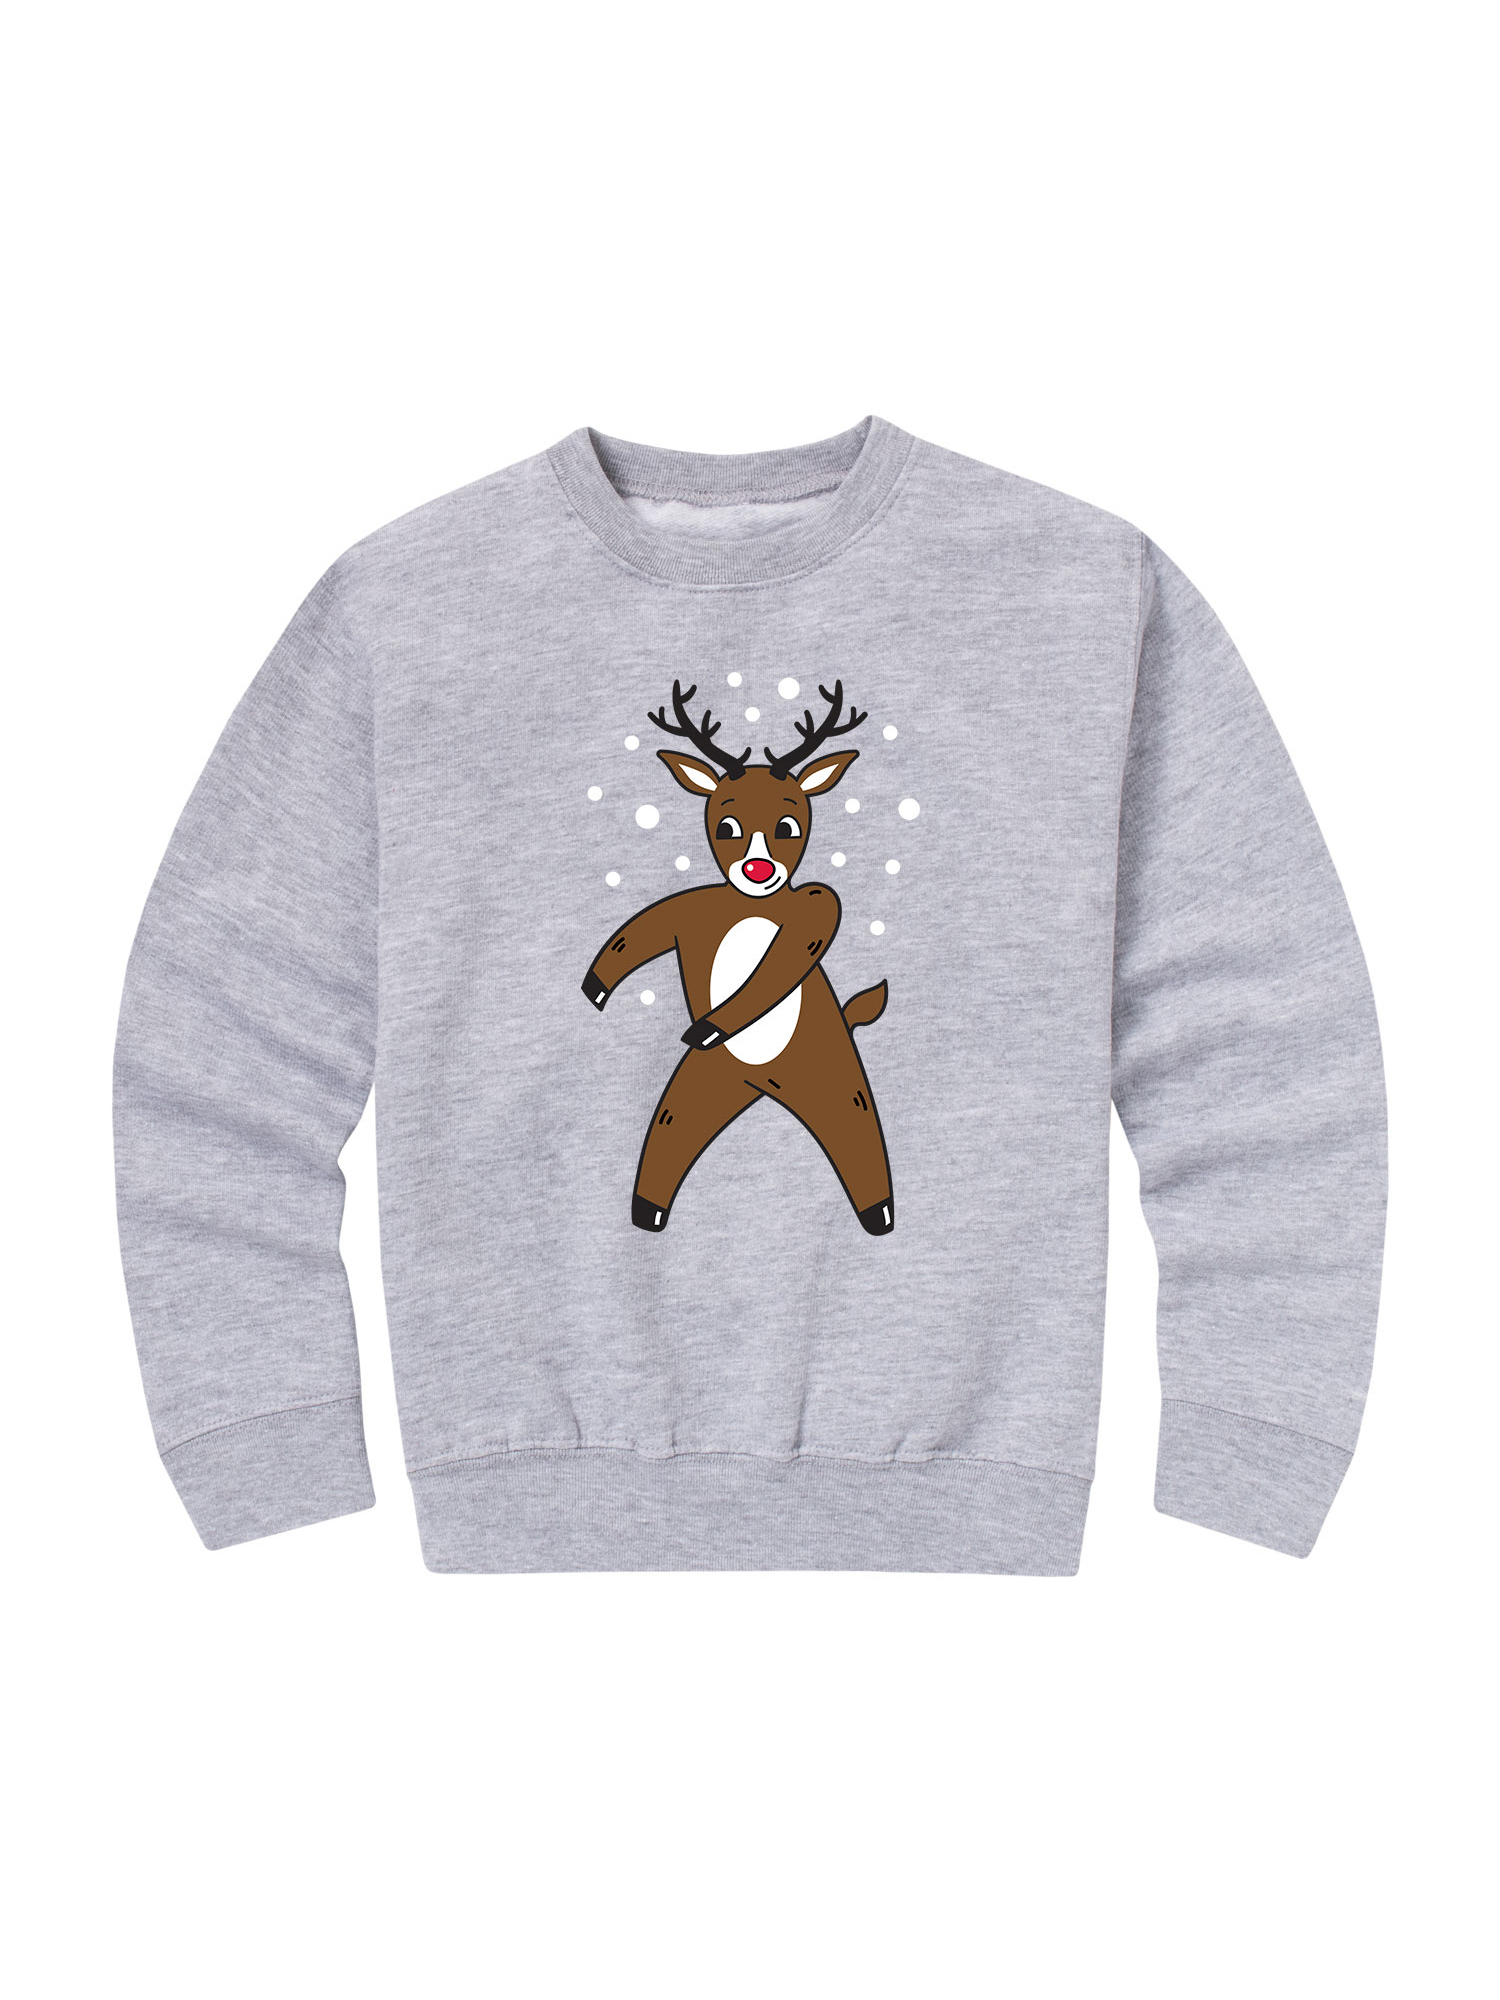 Floss Dance Reindeer - Toddler Crew Fleece